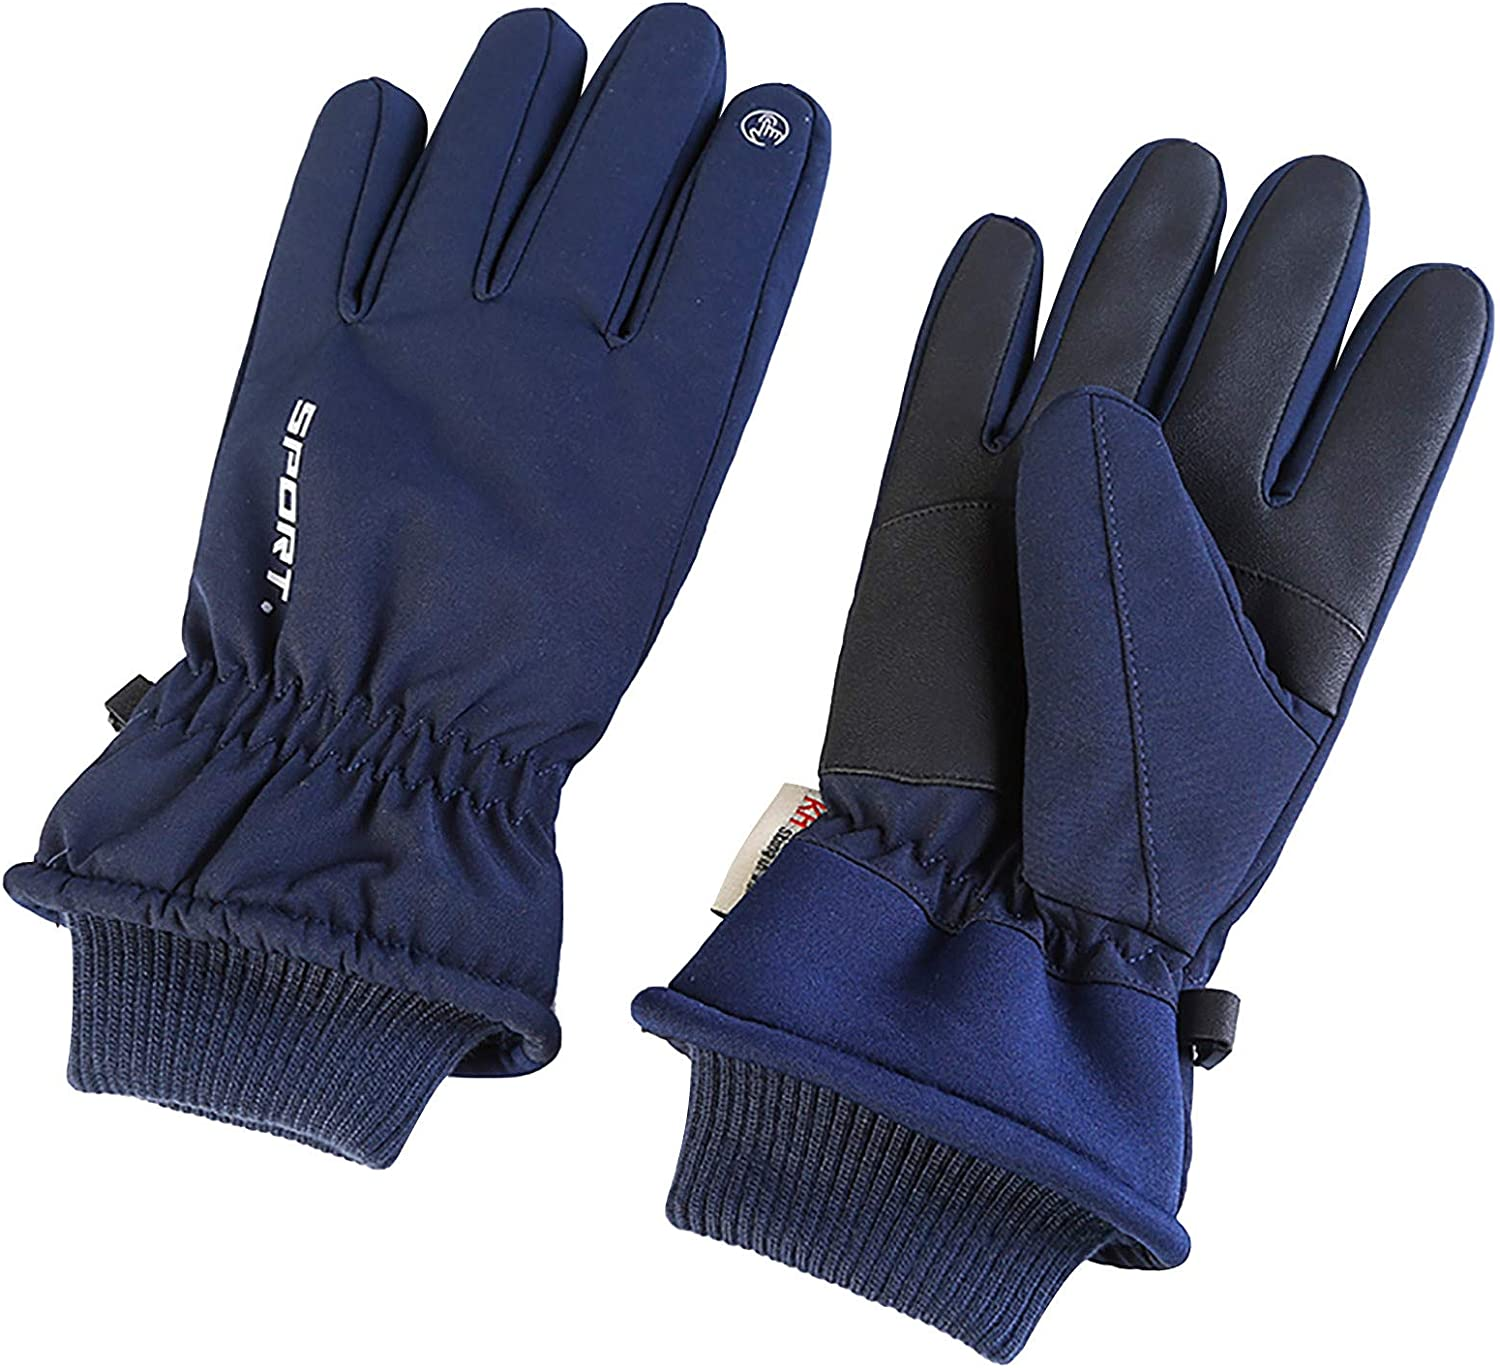 Unisex Winter Warm Waterproof Gloves Outdoor Cycling Zipper Touch-Screen Gloves Fashion/Prom/Warm/Bicycle Gloves